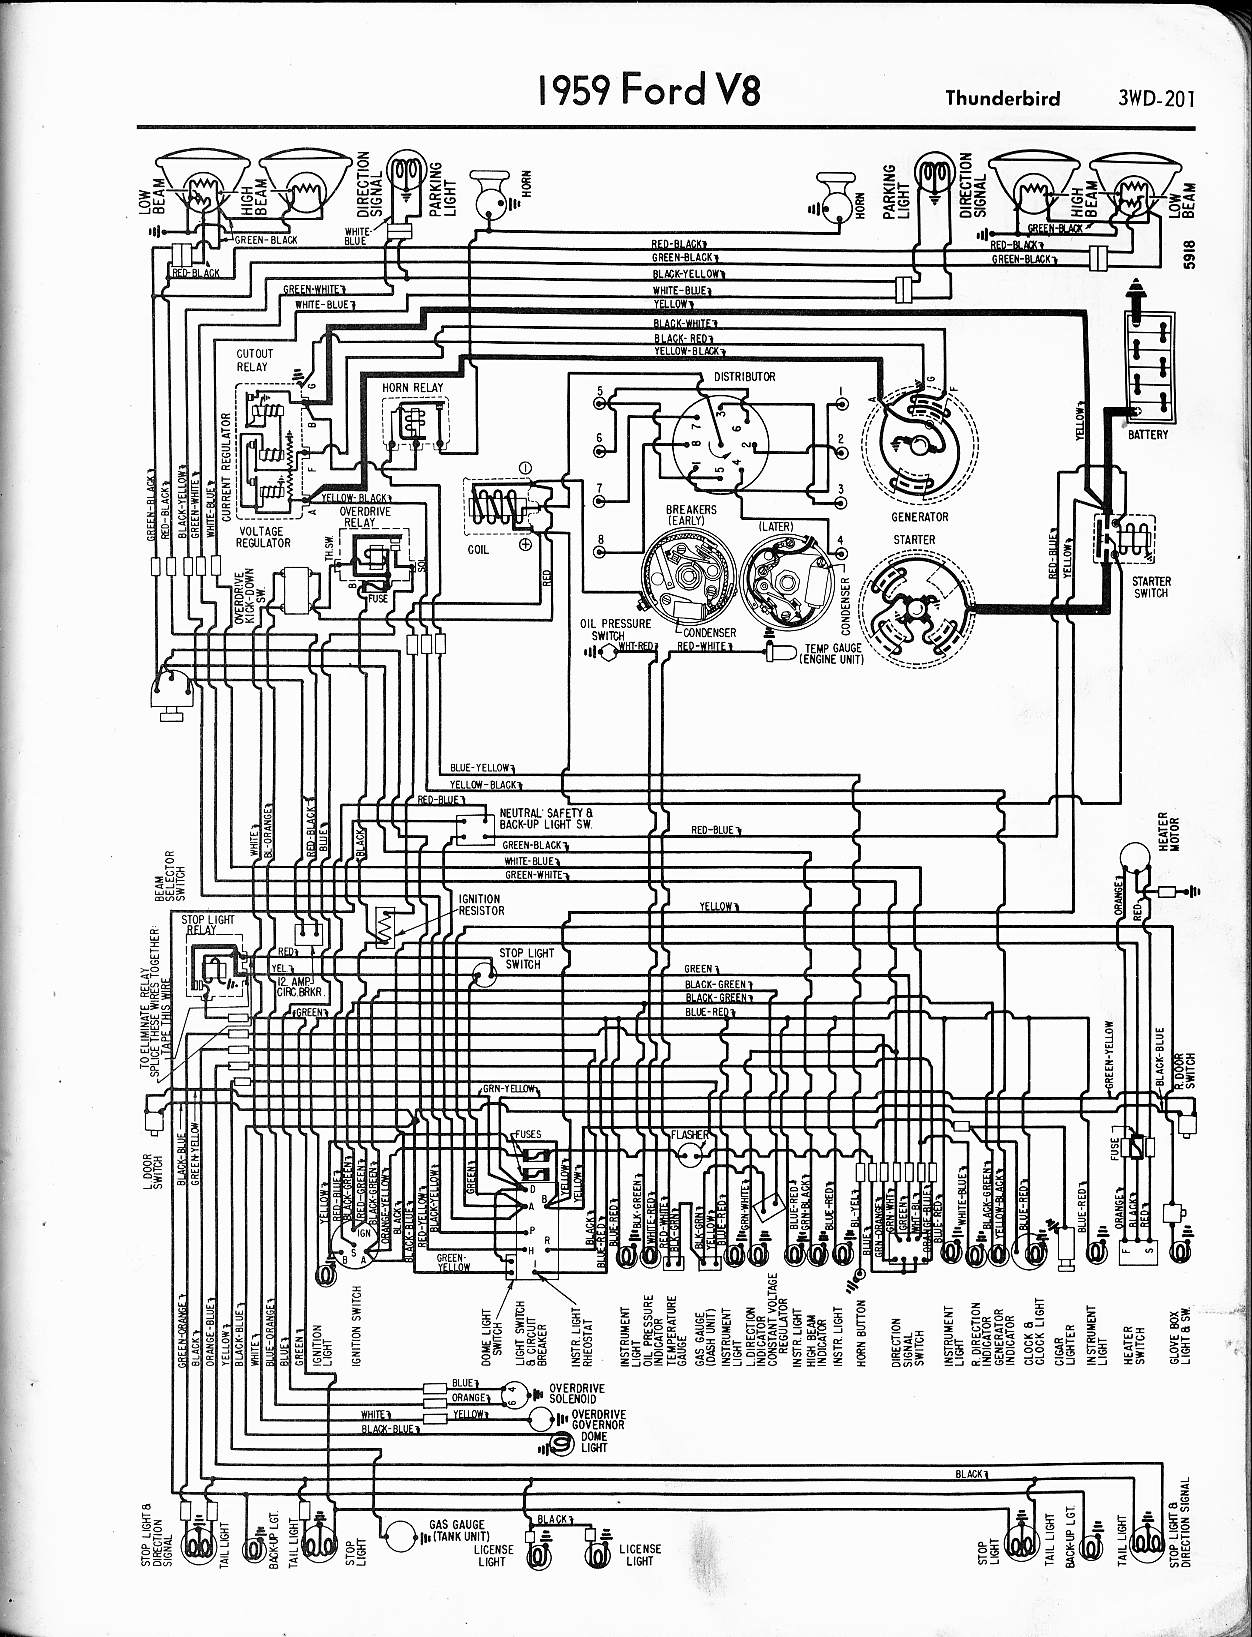 57 Ford Wiring Manual E Books Chevy Diagrams For Cars Passenger Car 1951 Diagram All 65 Diagrams57 5